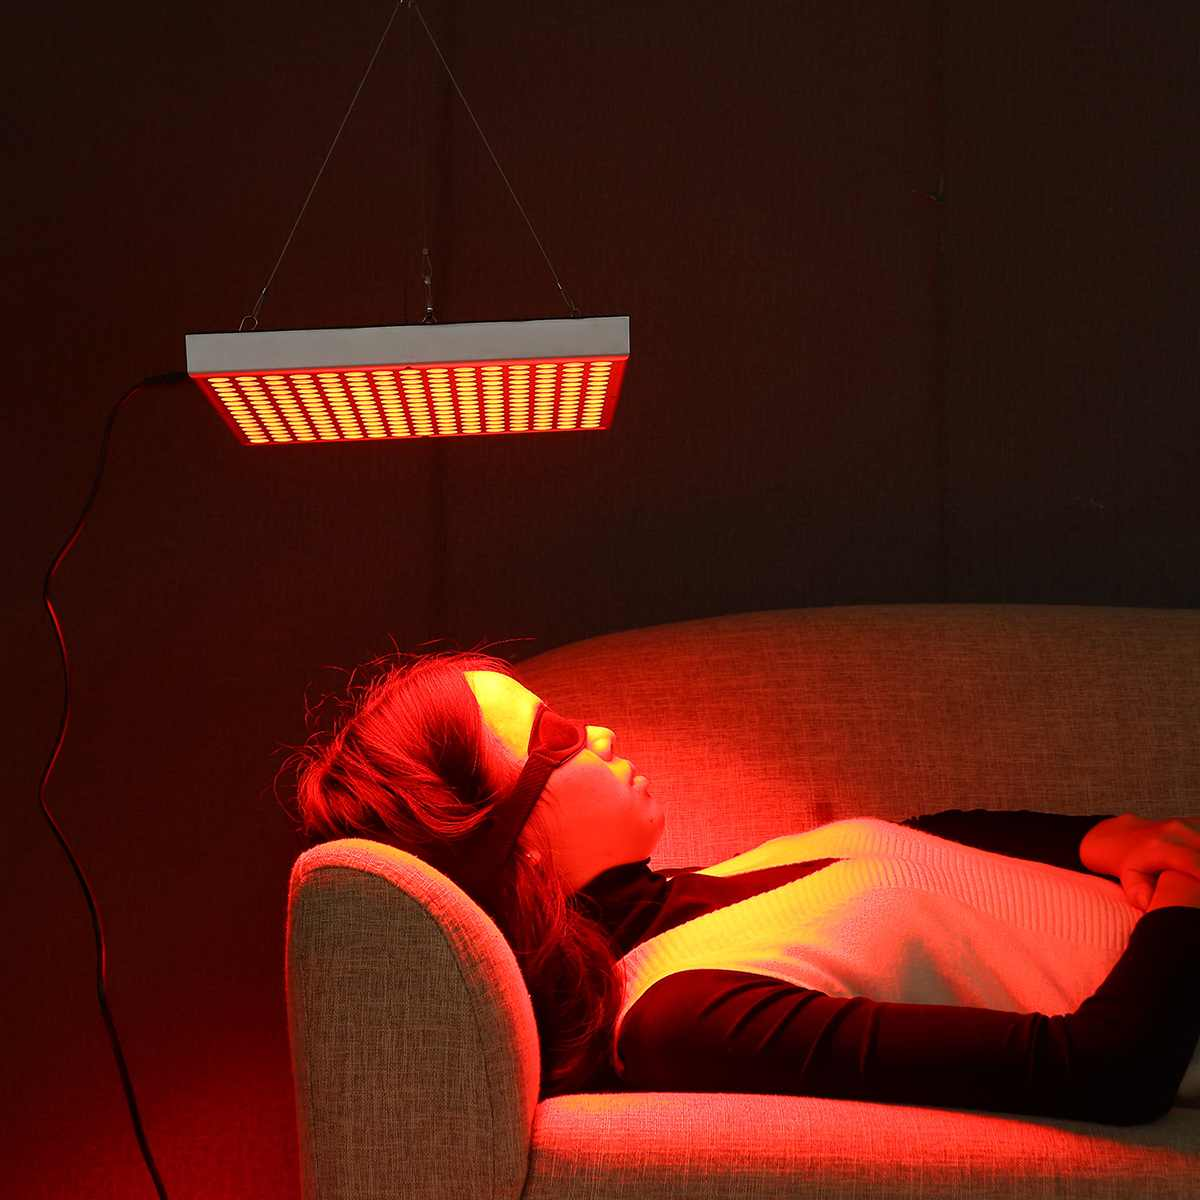 Red Led Light Therapy Deep Red 660nm 225LED Near Infrared Skin Rejuvenation Wrinkle Removal Light Panel For Skin Pain